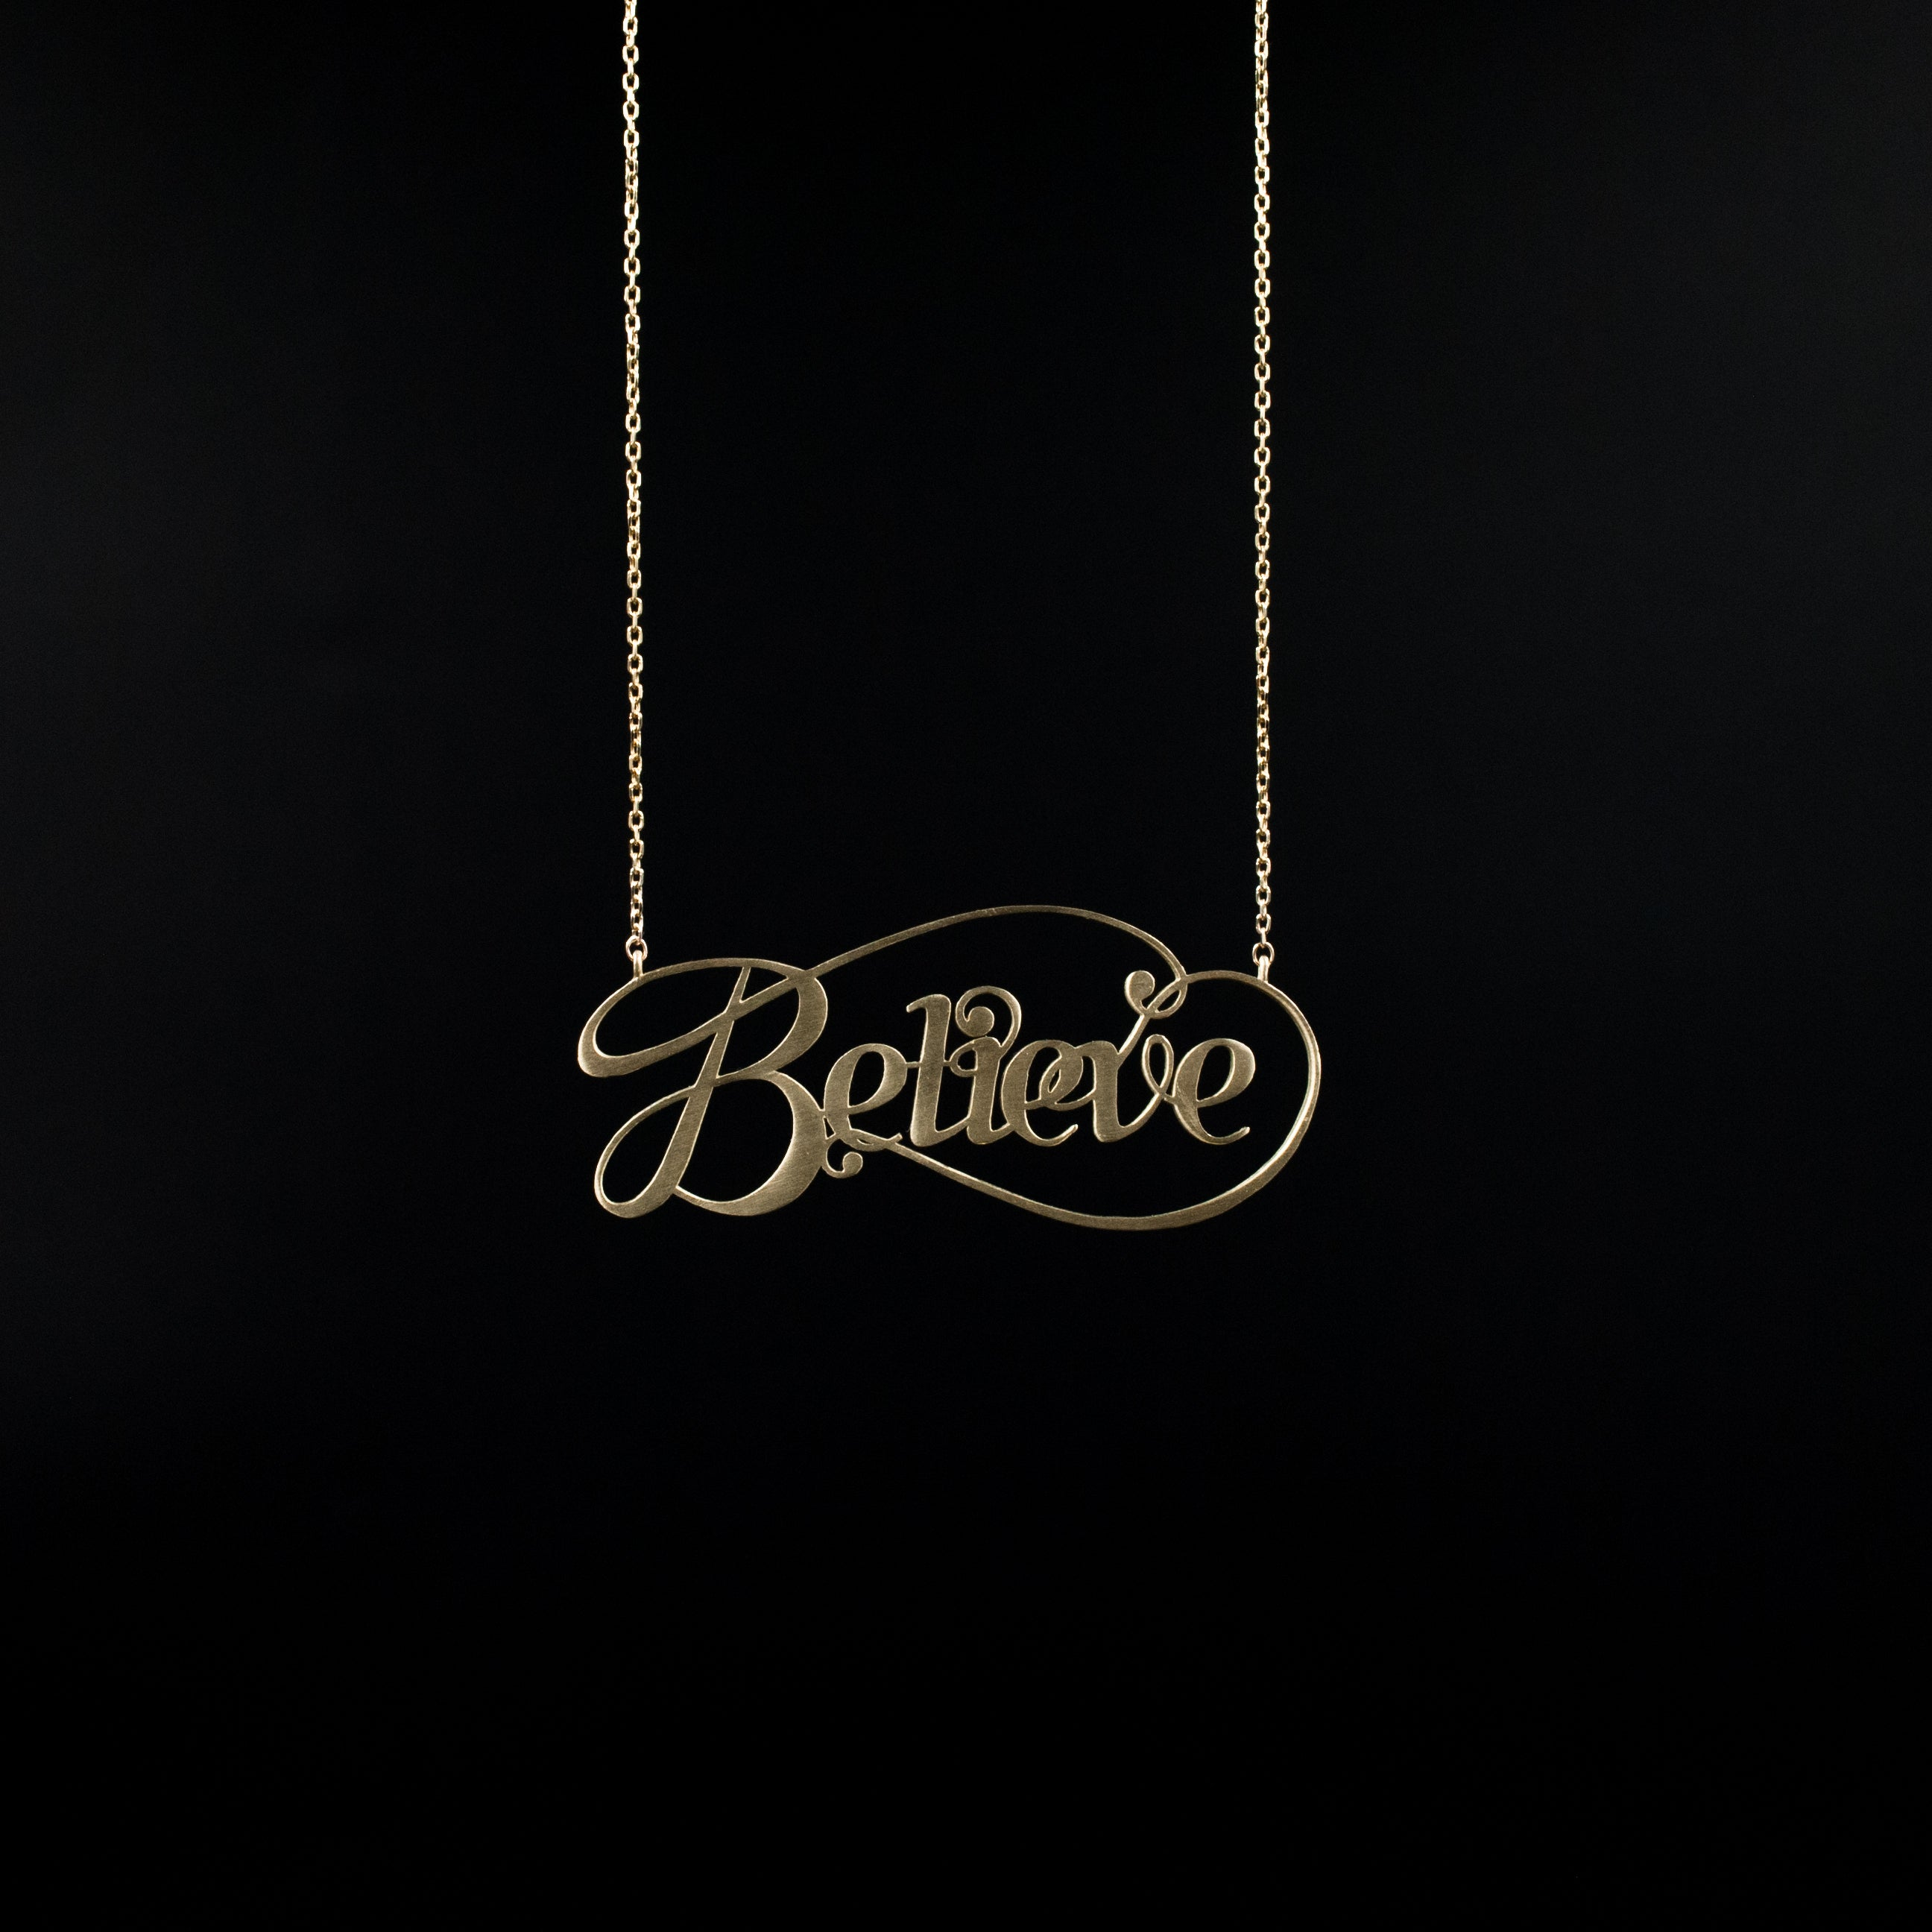 Believe Necklace - Designed by Moshik Nadav Fashion Typography